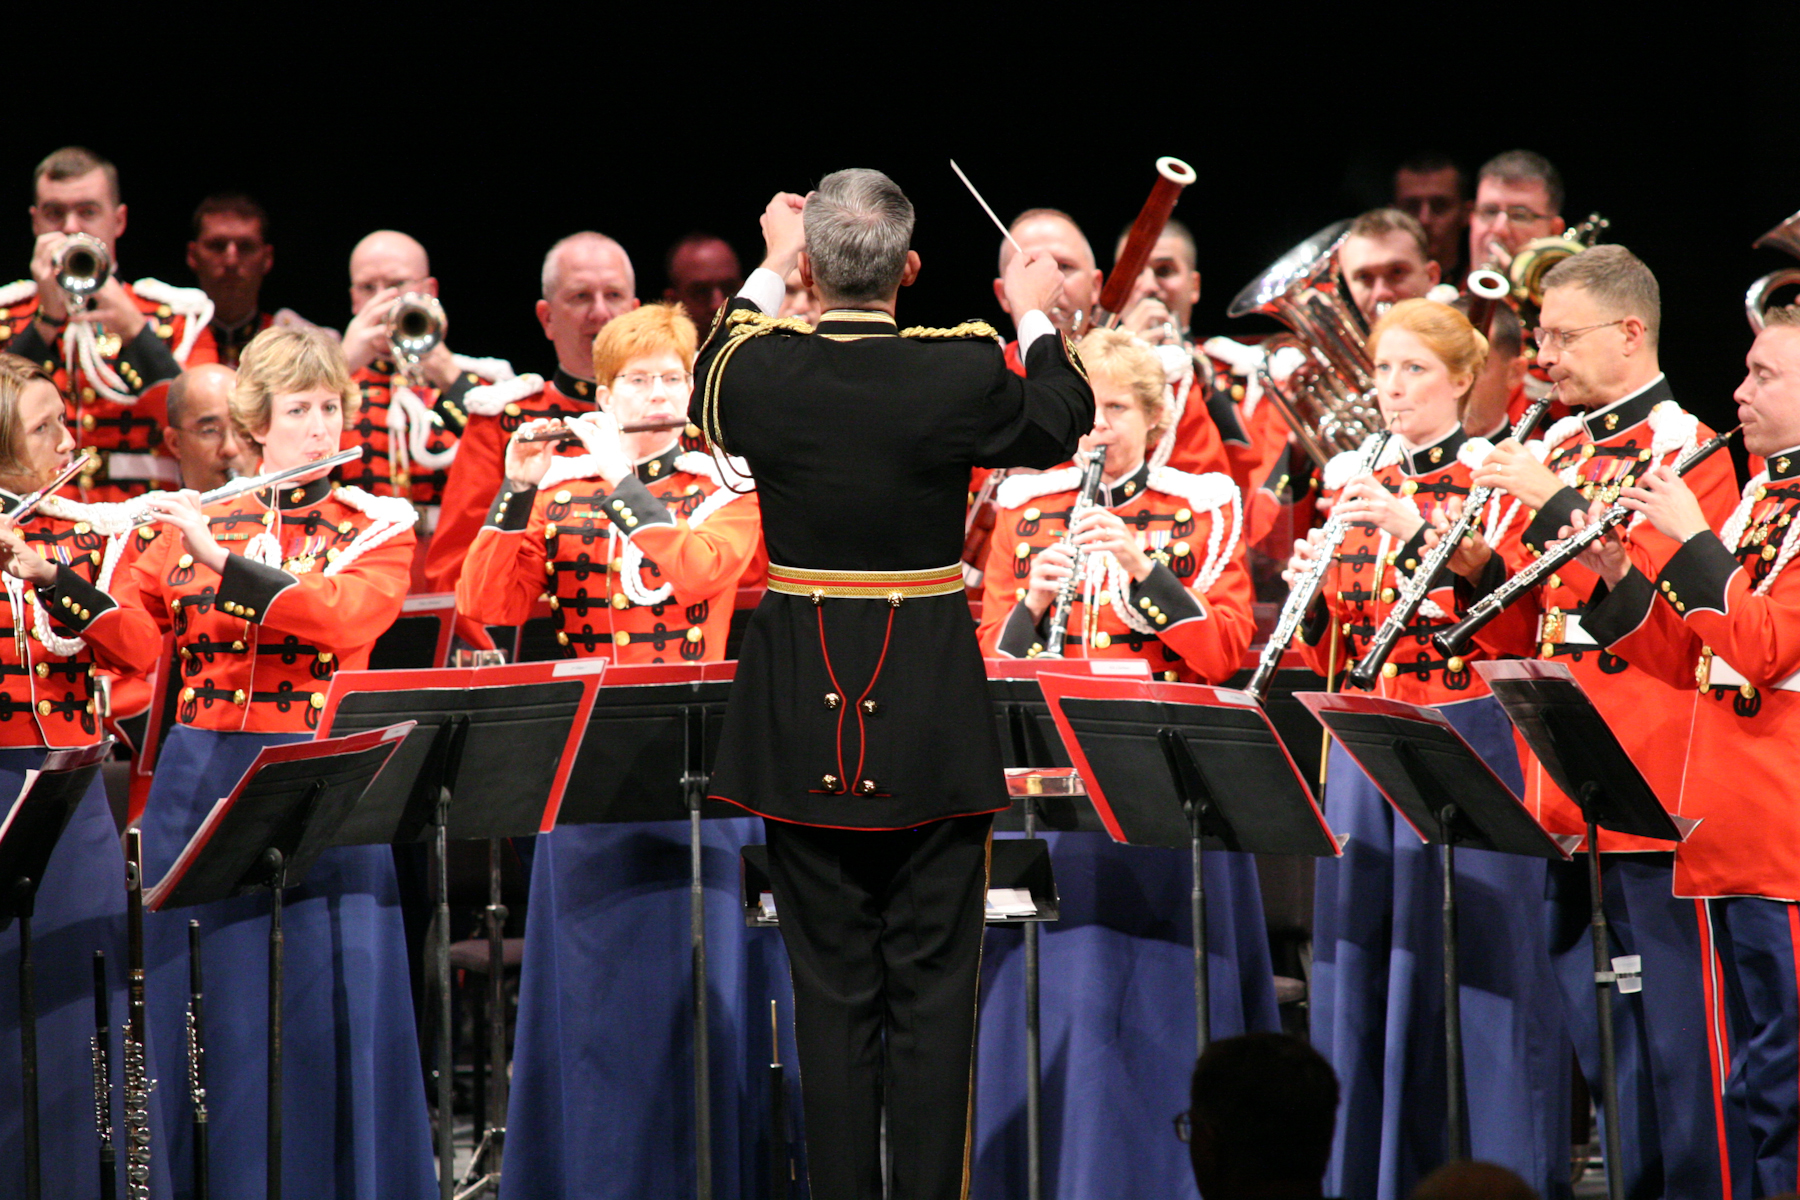 The Marine Band on tour in Lebanon, Pa., Oct. 2, 2007.